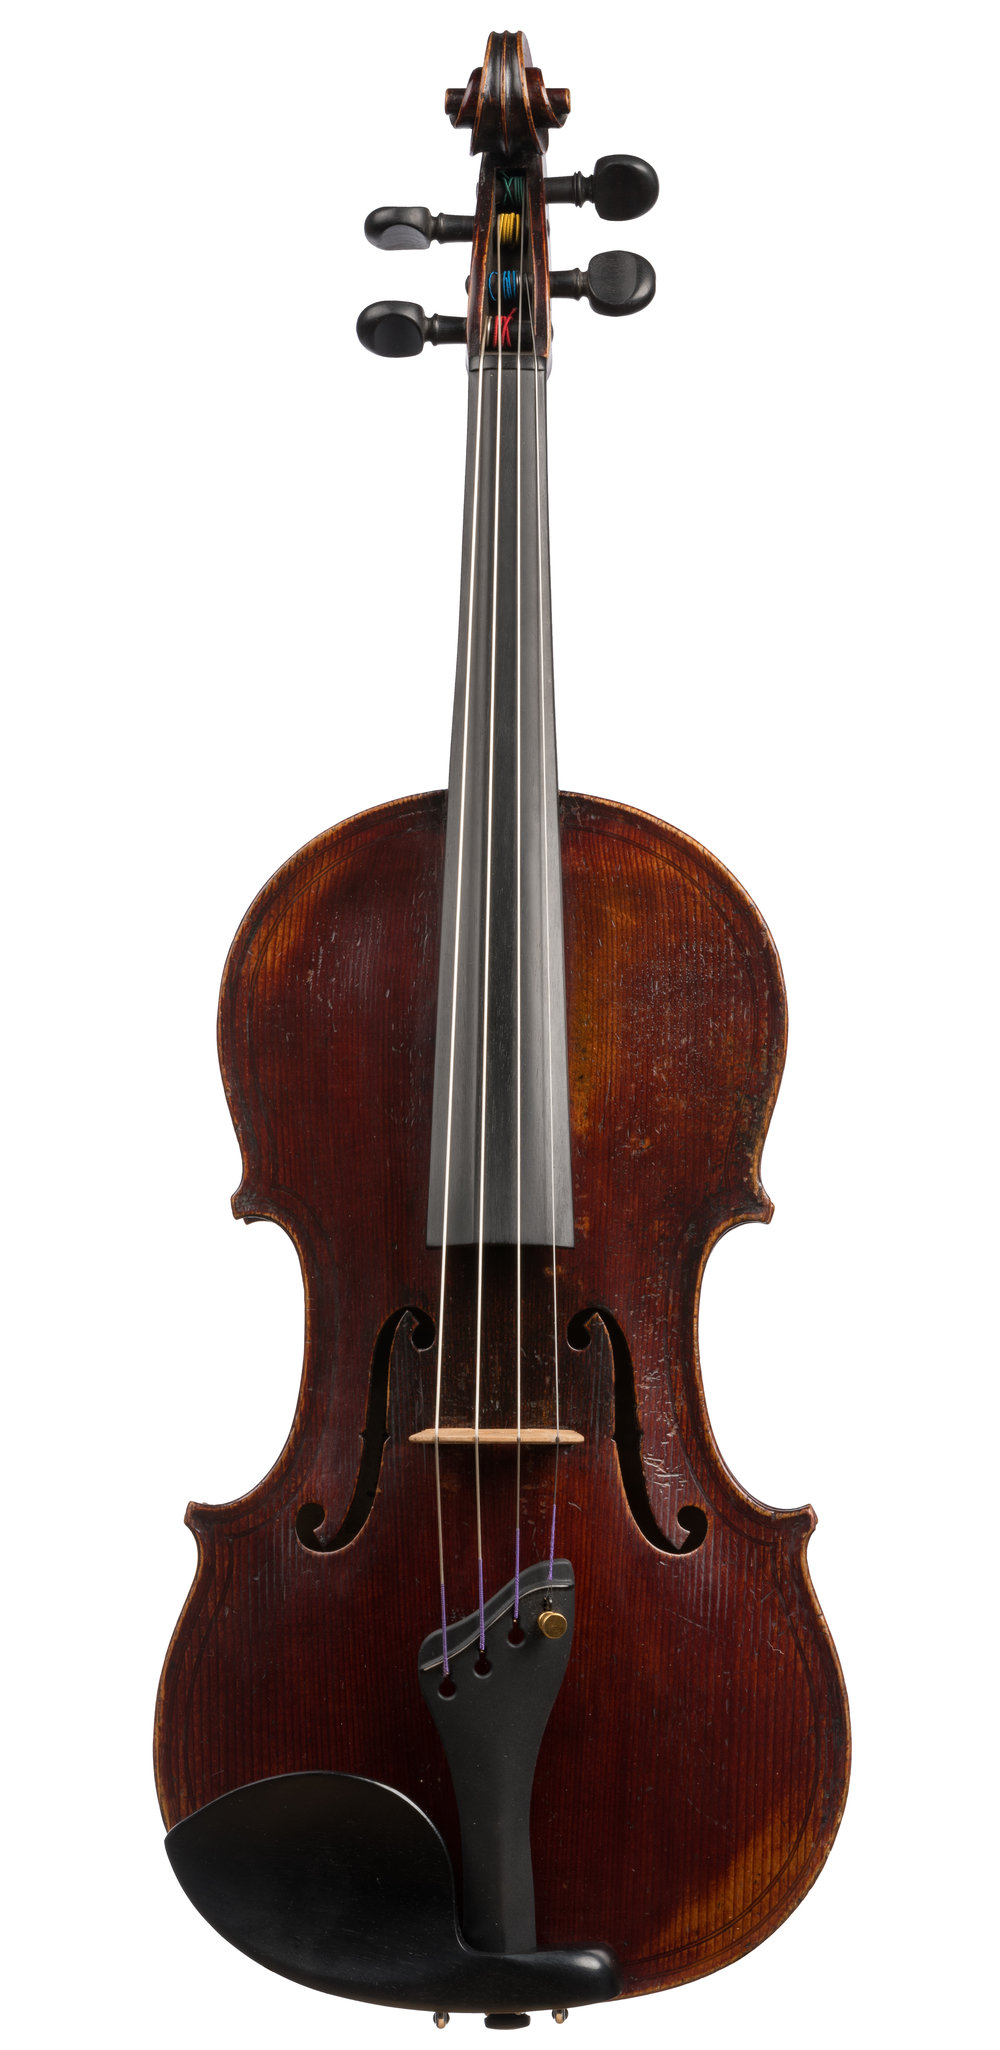 French Viola labeled C. A. Miremont, ca 1850, 15 1/4